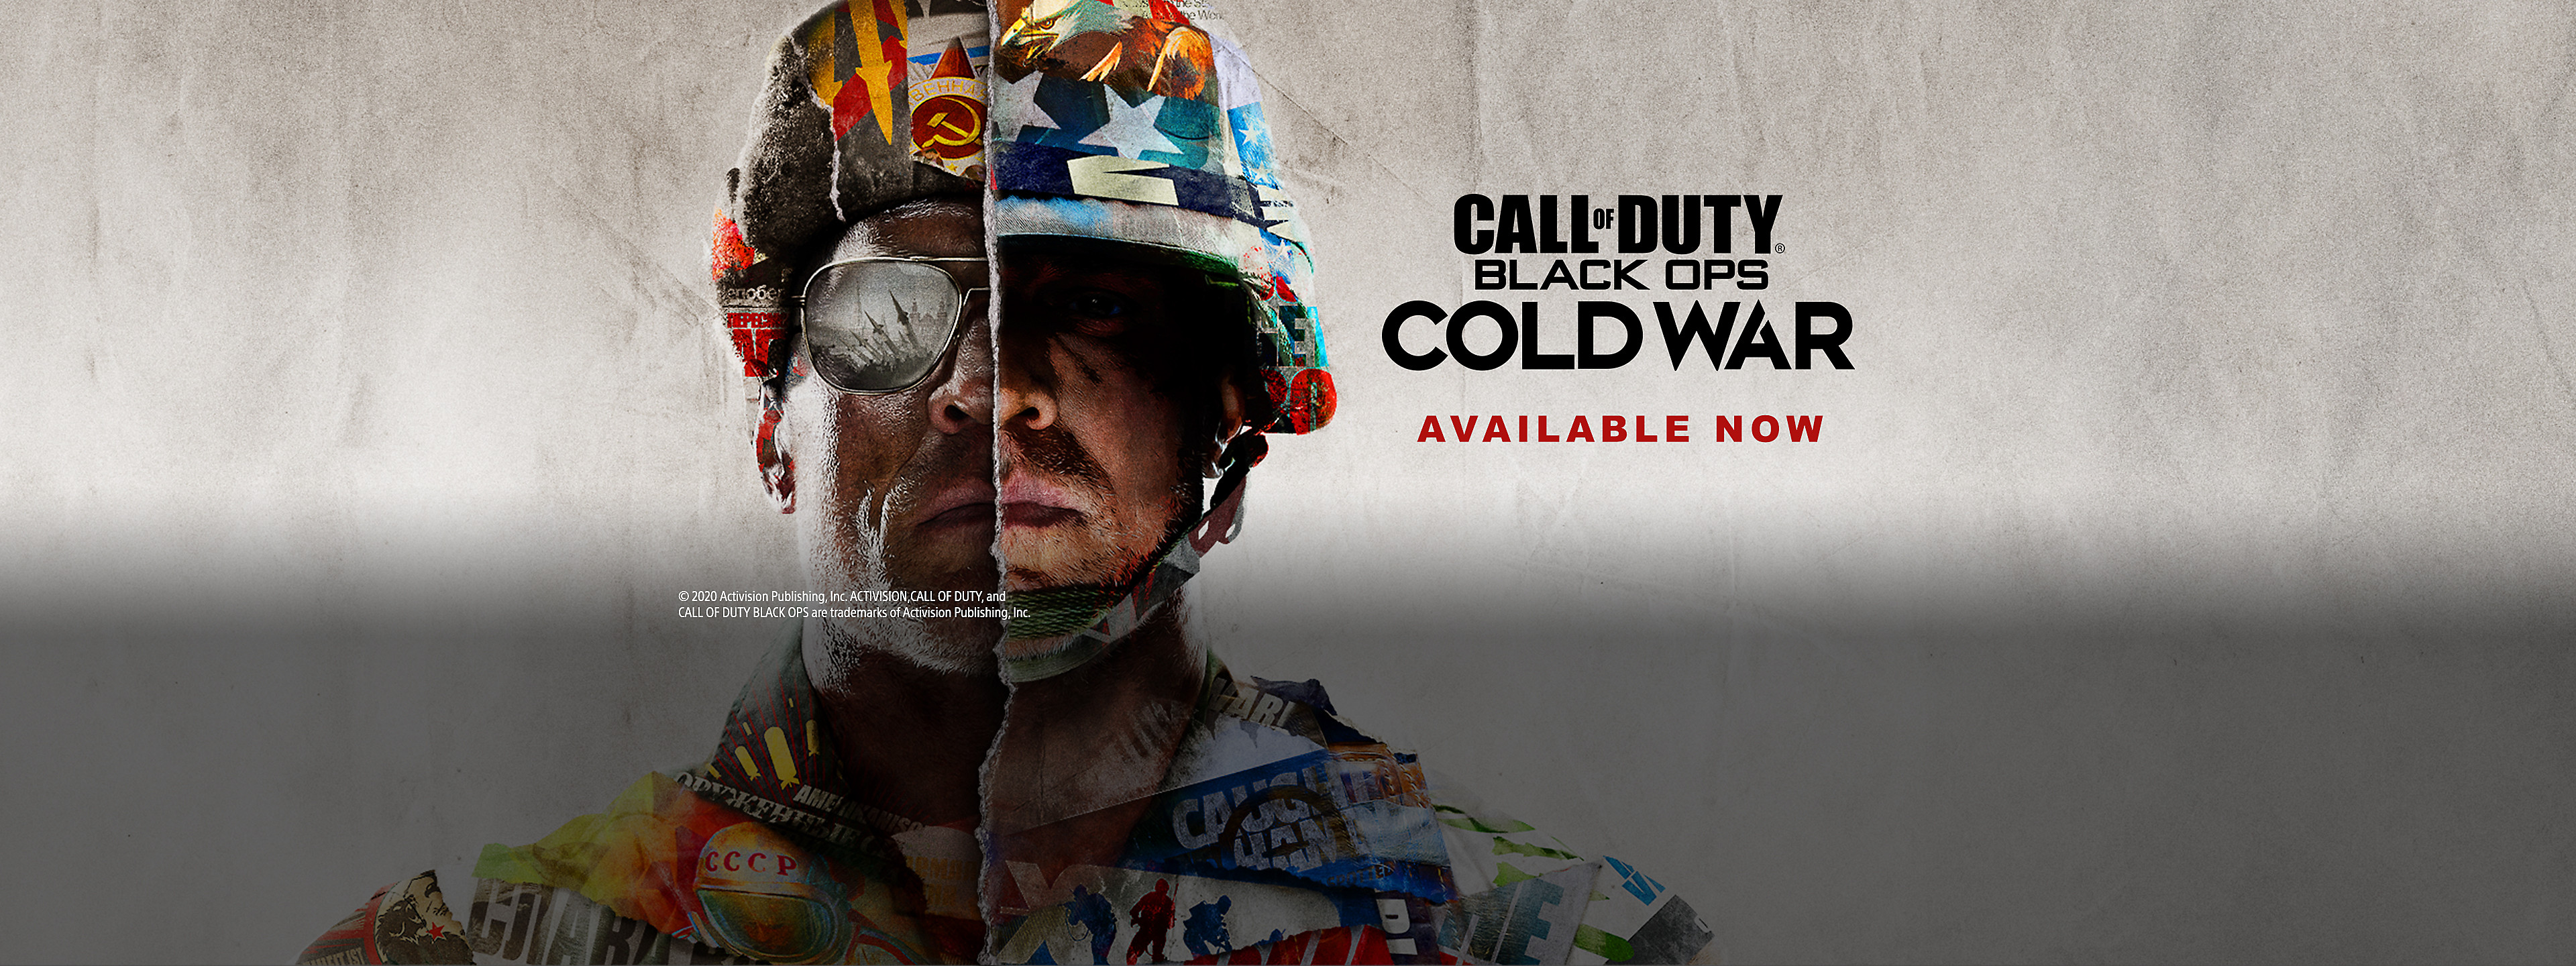 Call of Duty: Black Ops Cold War - Now Available